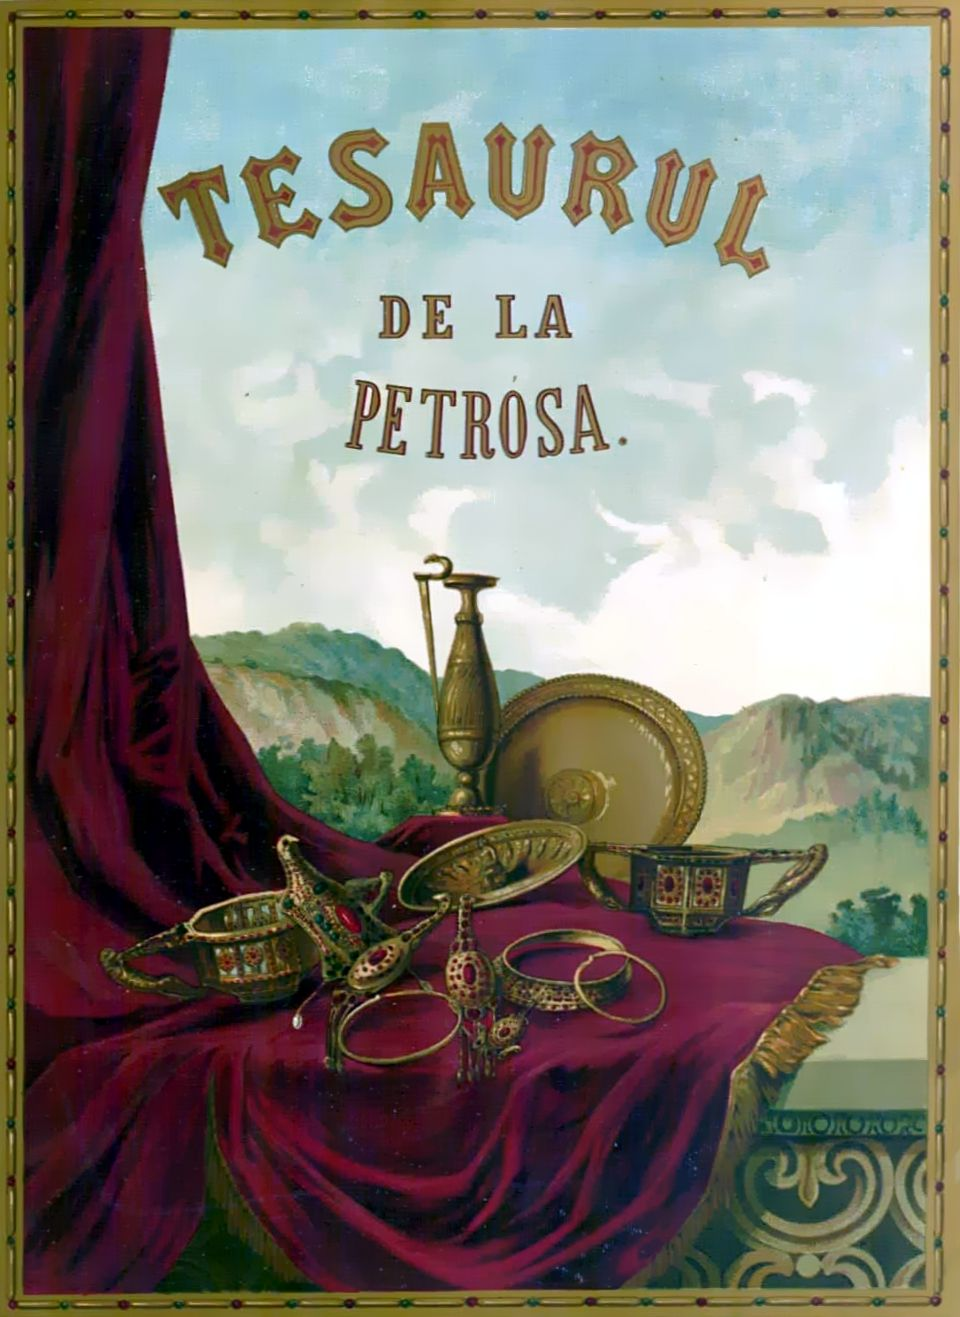 https://i2.wp.com/upload.wikimedia.org/wikipedia/commons/9/96/Tesaurul_de_la_Petrosa.jpg